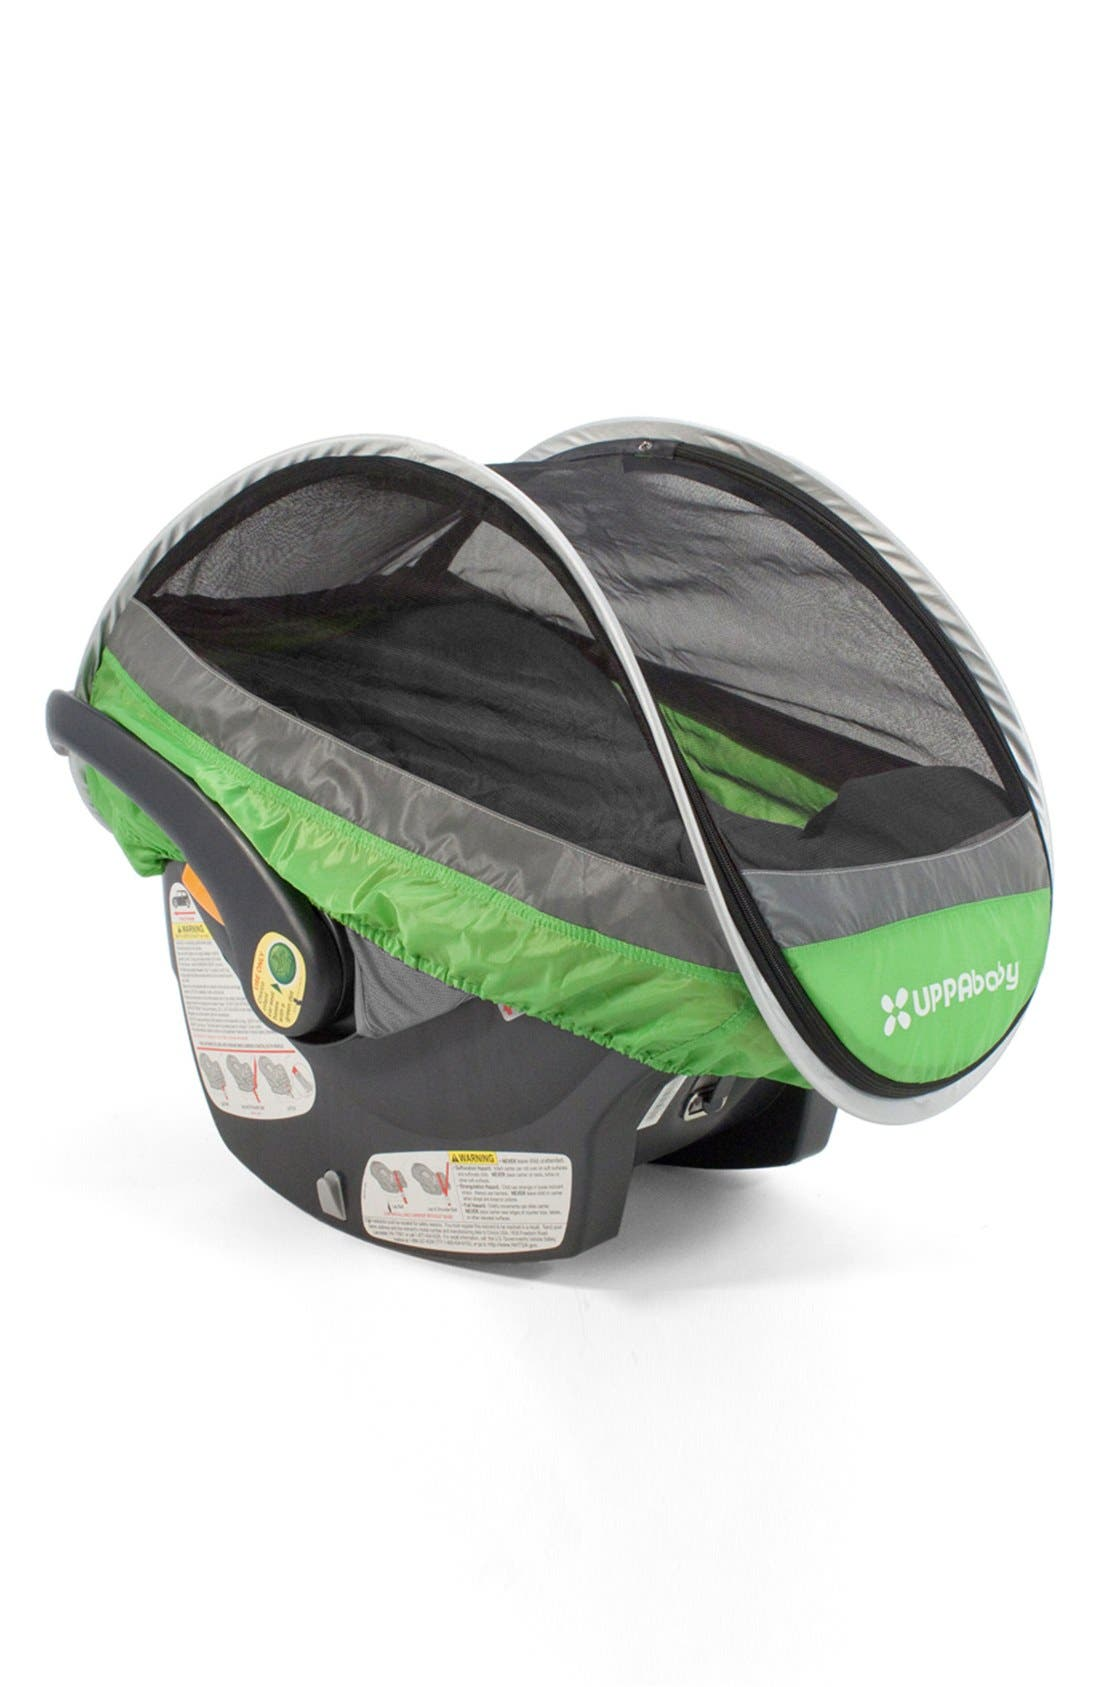 Alternate Image 1 Selected - UPPAbaby 'Cabana' Infant Car Seat All-Weather Shield